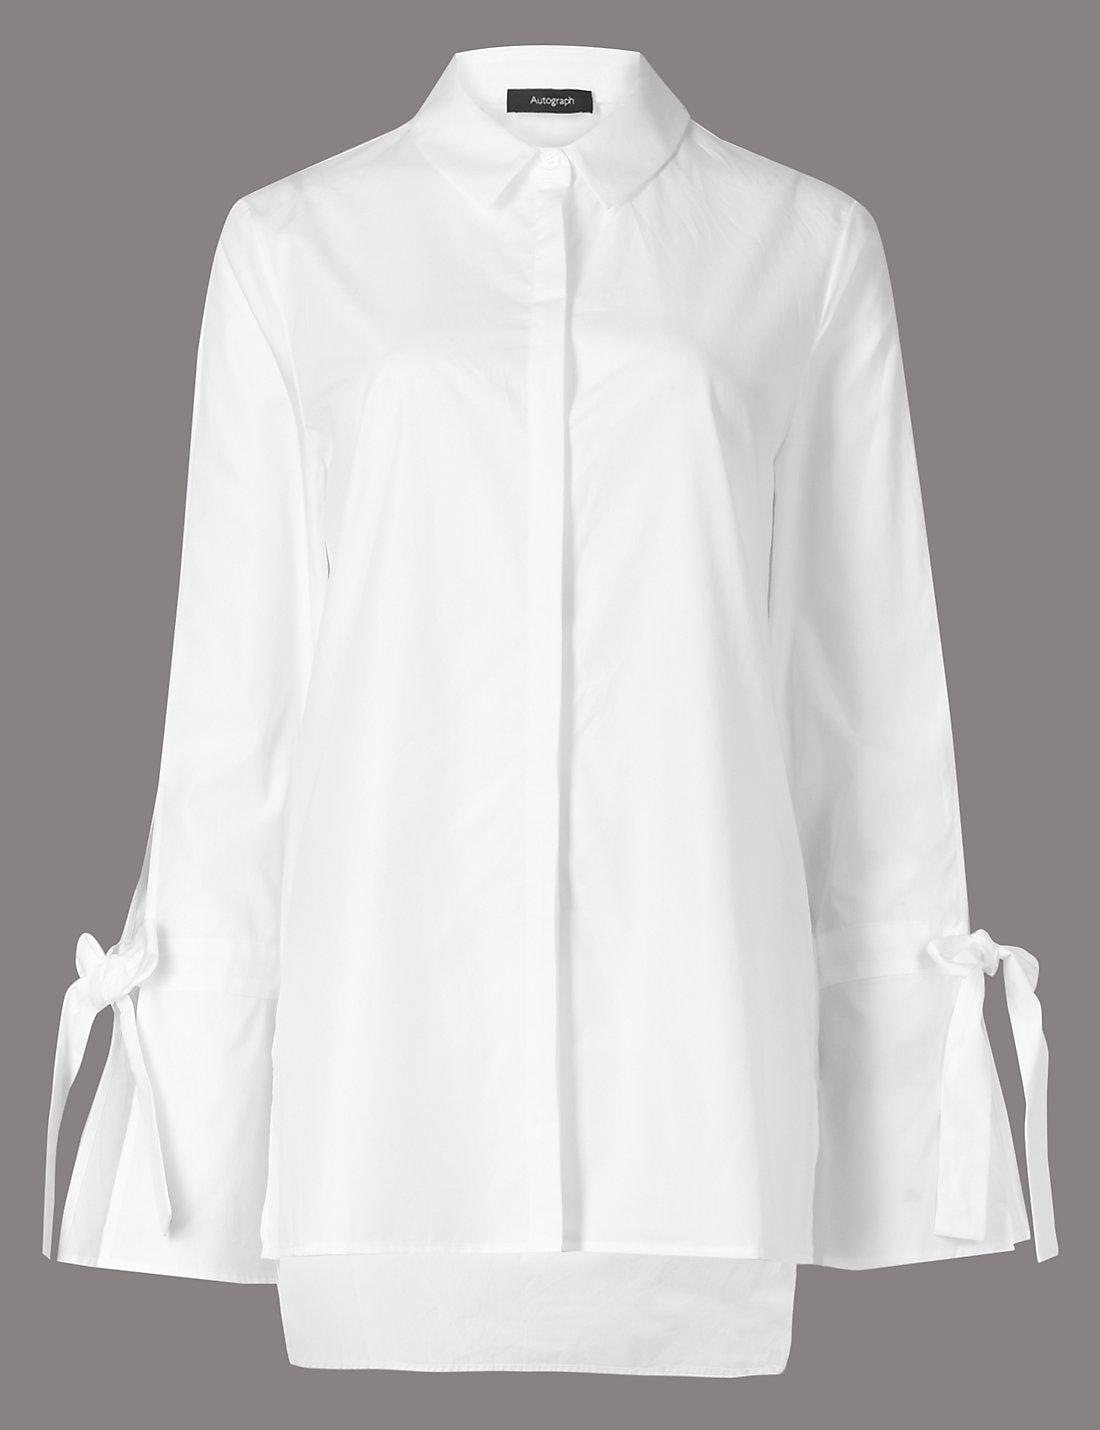 M&S white shirt with fluted sleeves and bow details